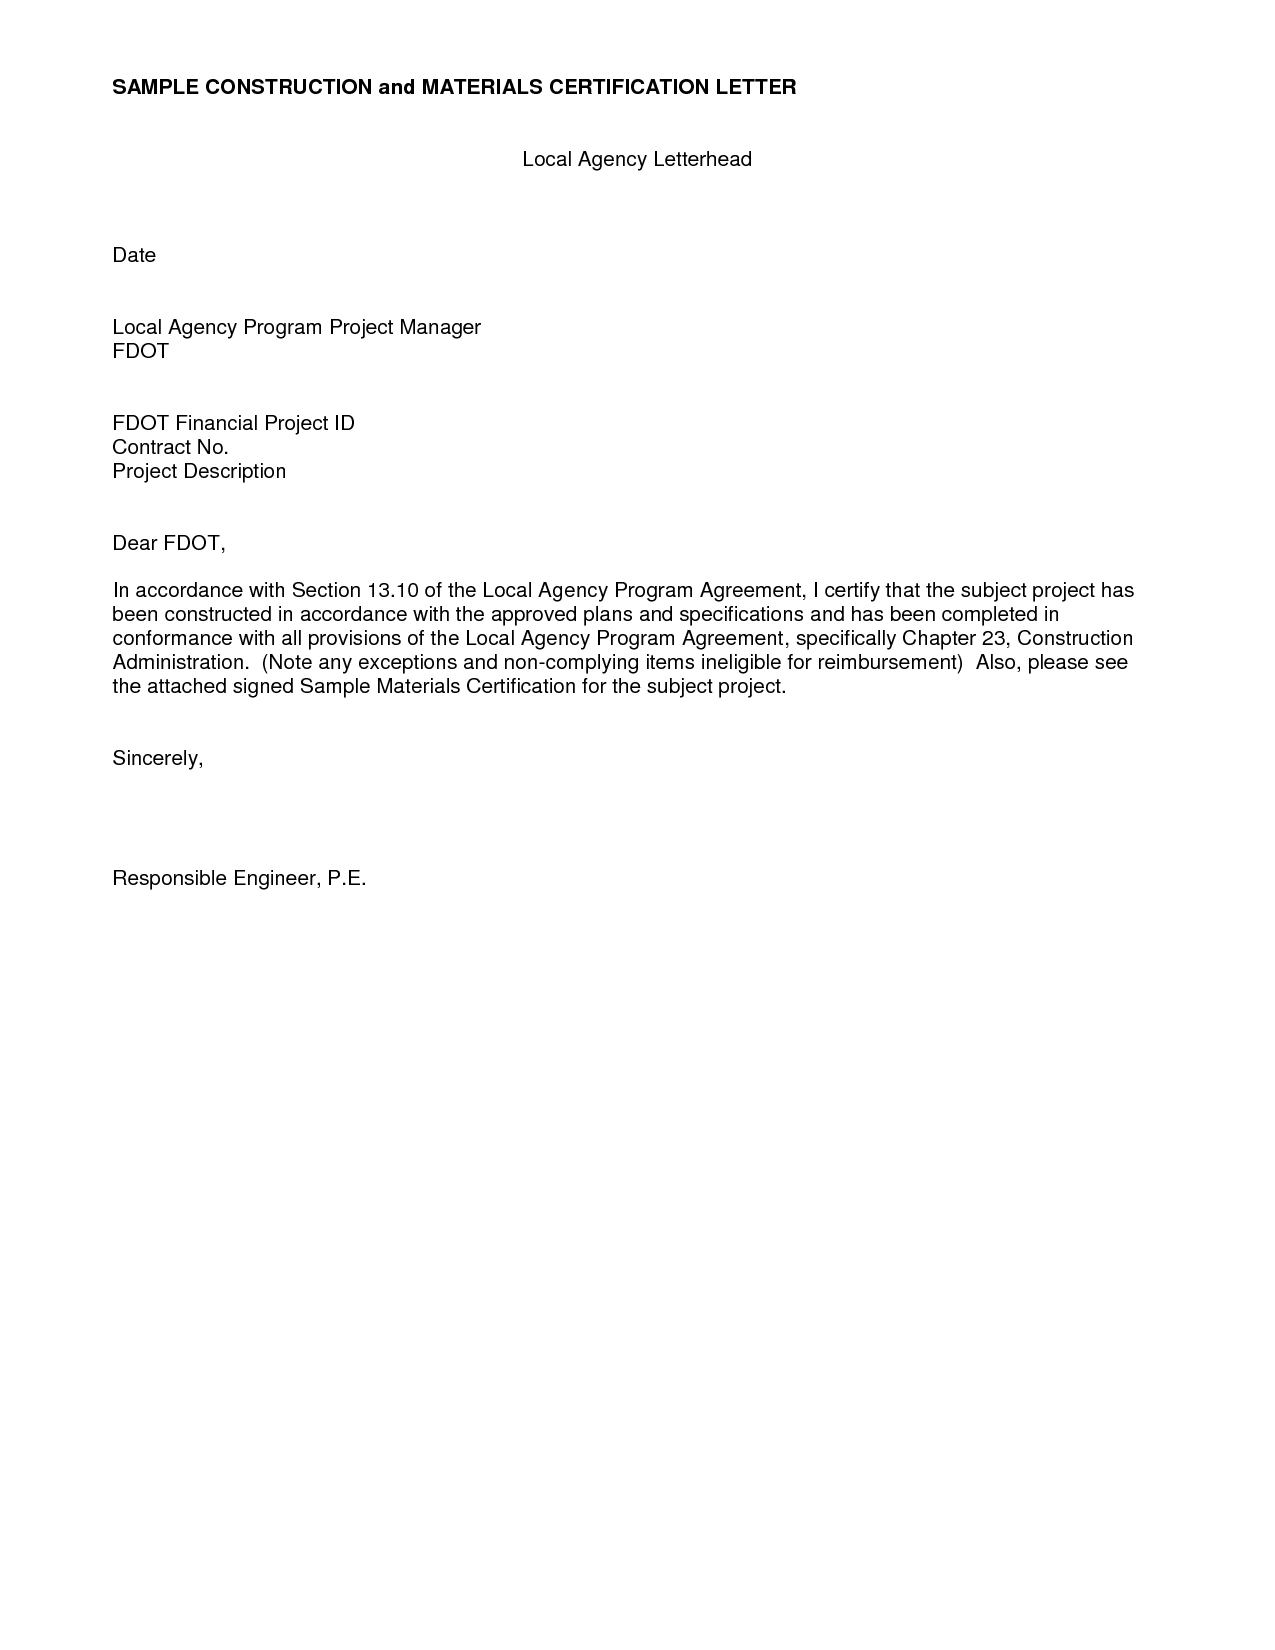 Sample certification letter format connecticut legal services sample certification letter format connecticut legal services private nonprofit corporation summer madrichimfo Image collections